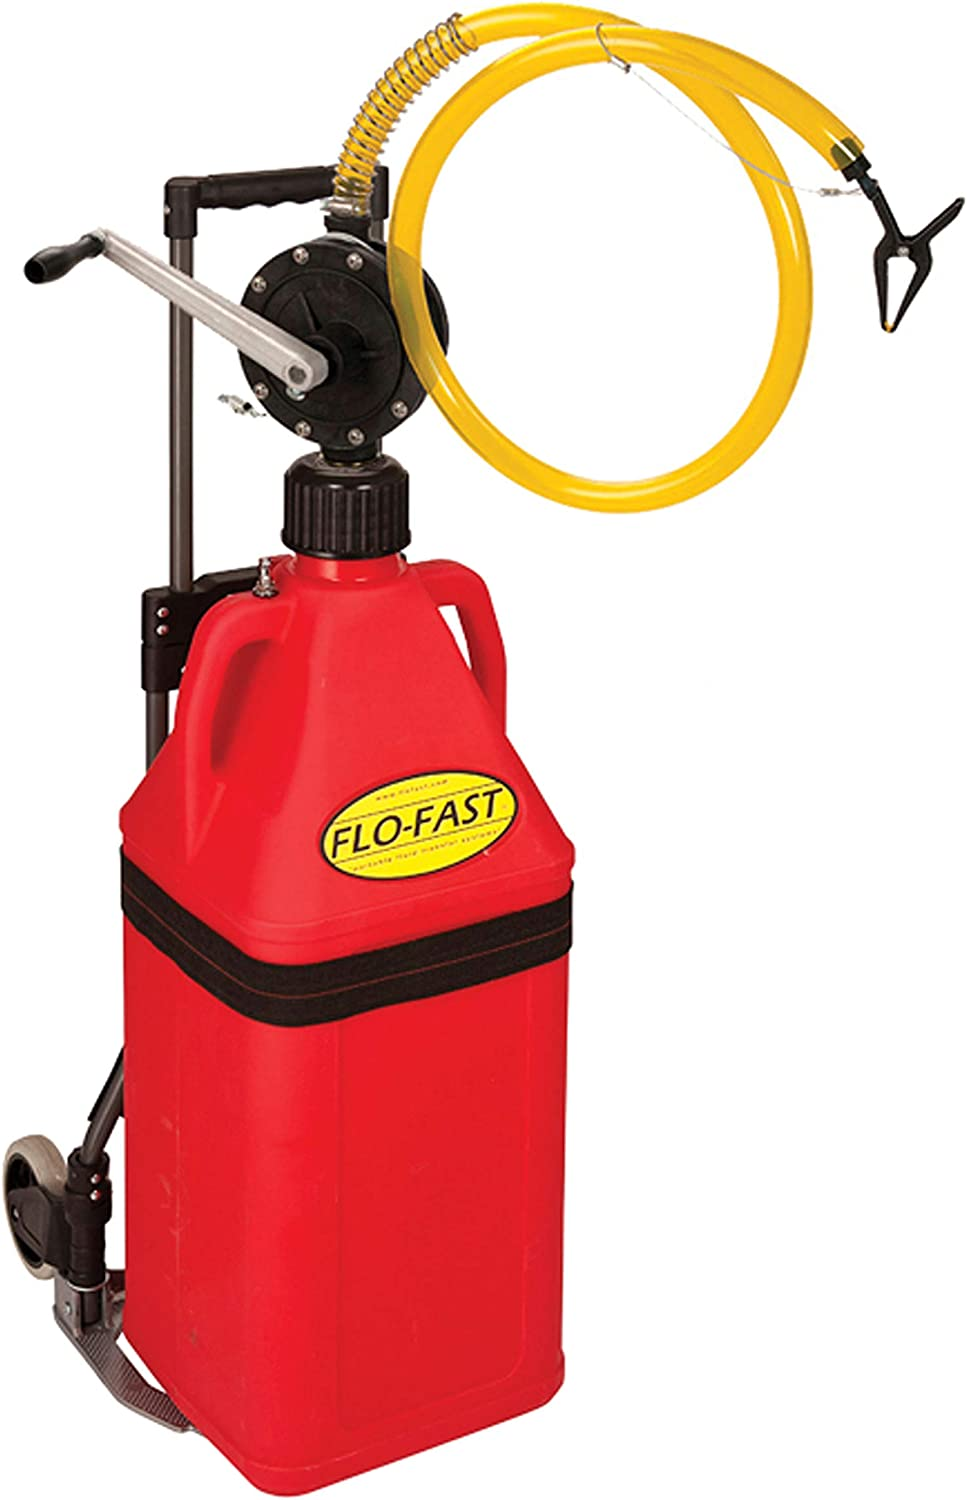 Flo-Fast 30105-R System 10.5 Pump Long-awaited Red Max 53% OFF